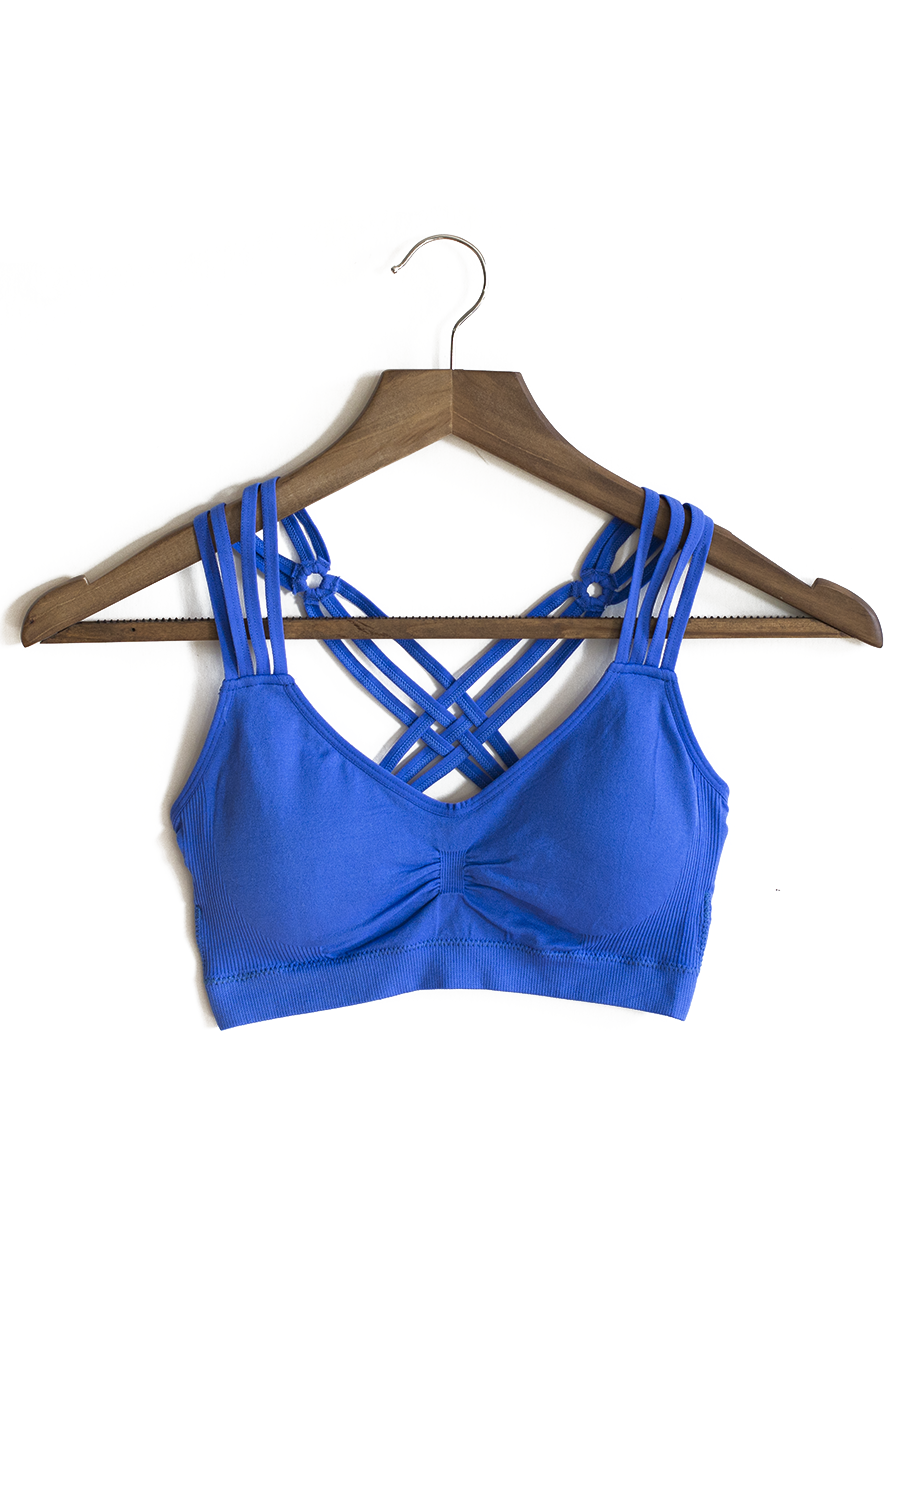 Sports Bra in Royal Blue Retail cost at other Boutique's